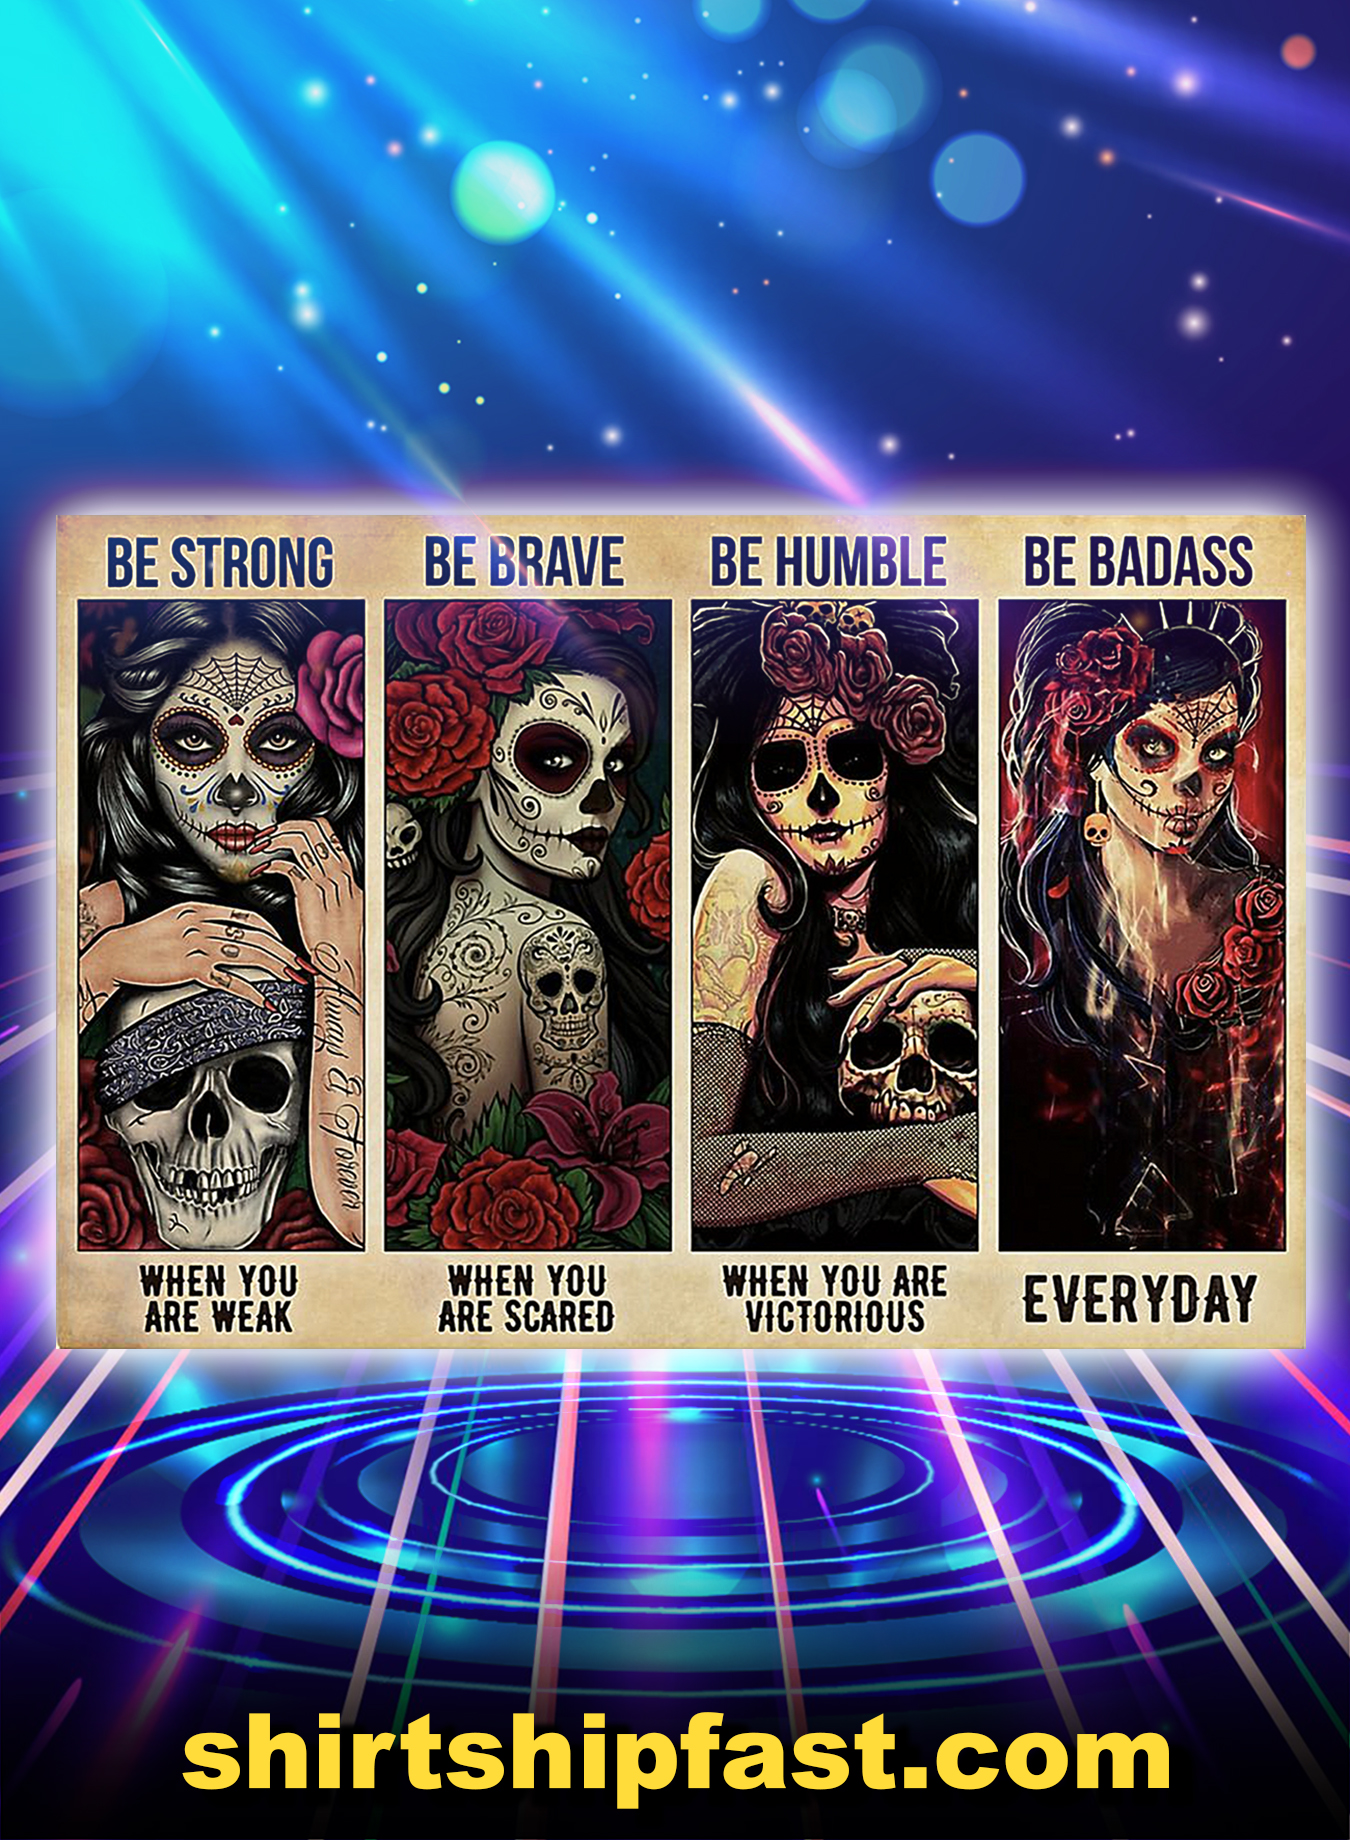 Sugar skull Day of the dead be strong be brave be humble be badass poster - A3